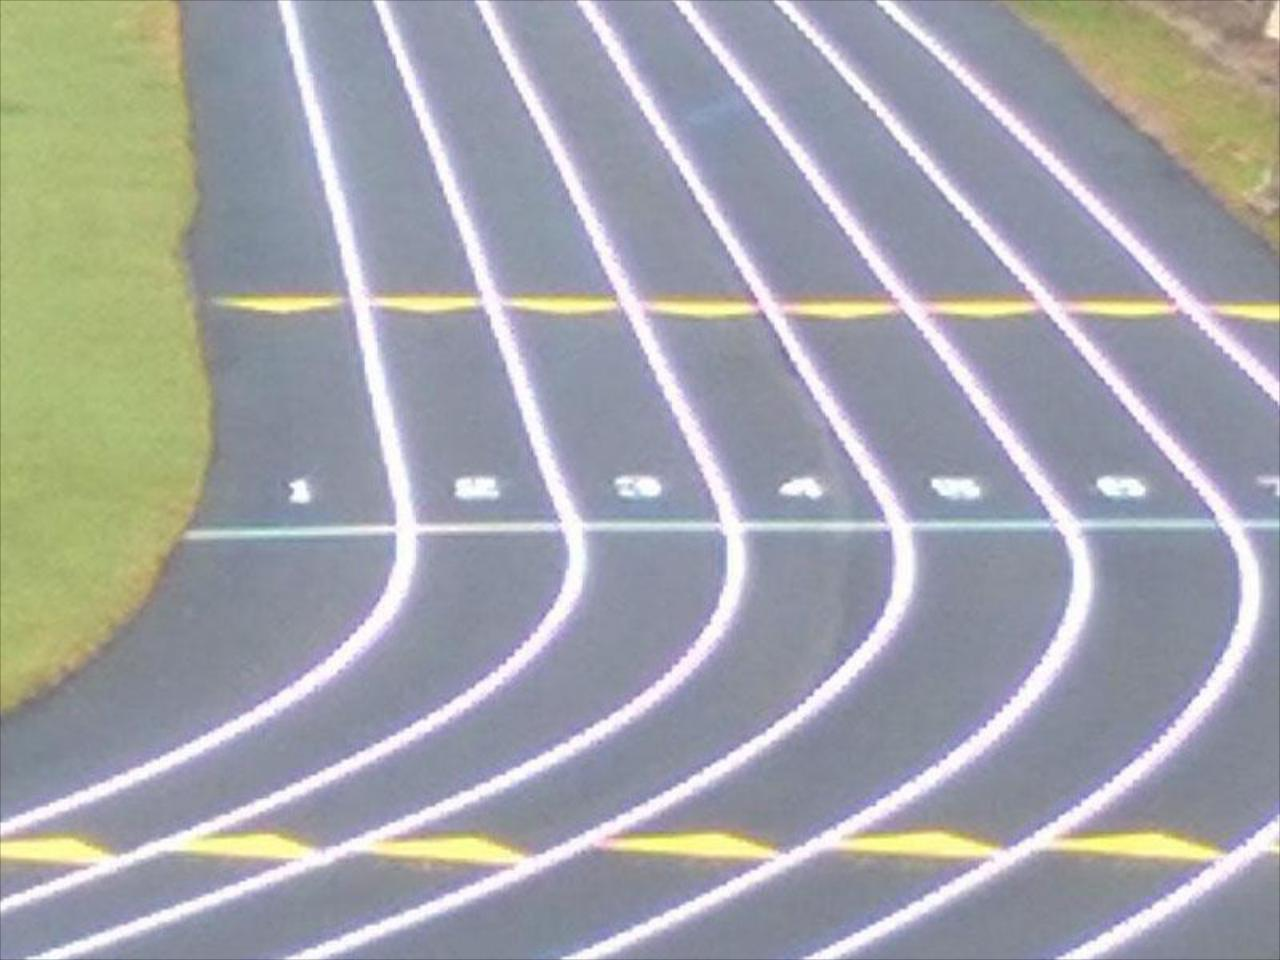 Commercial Asphalt Striping Services